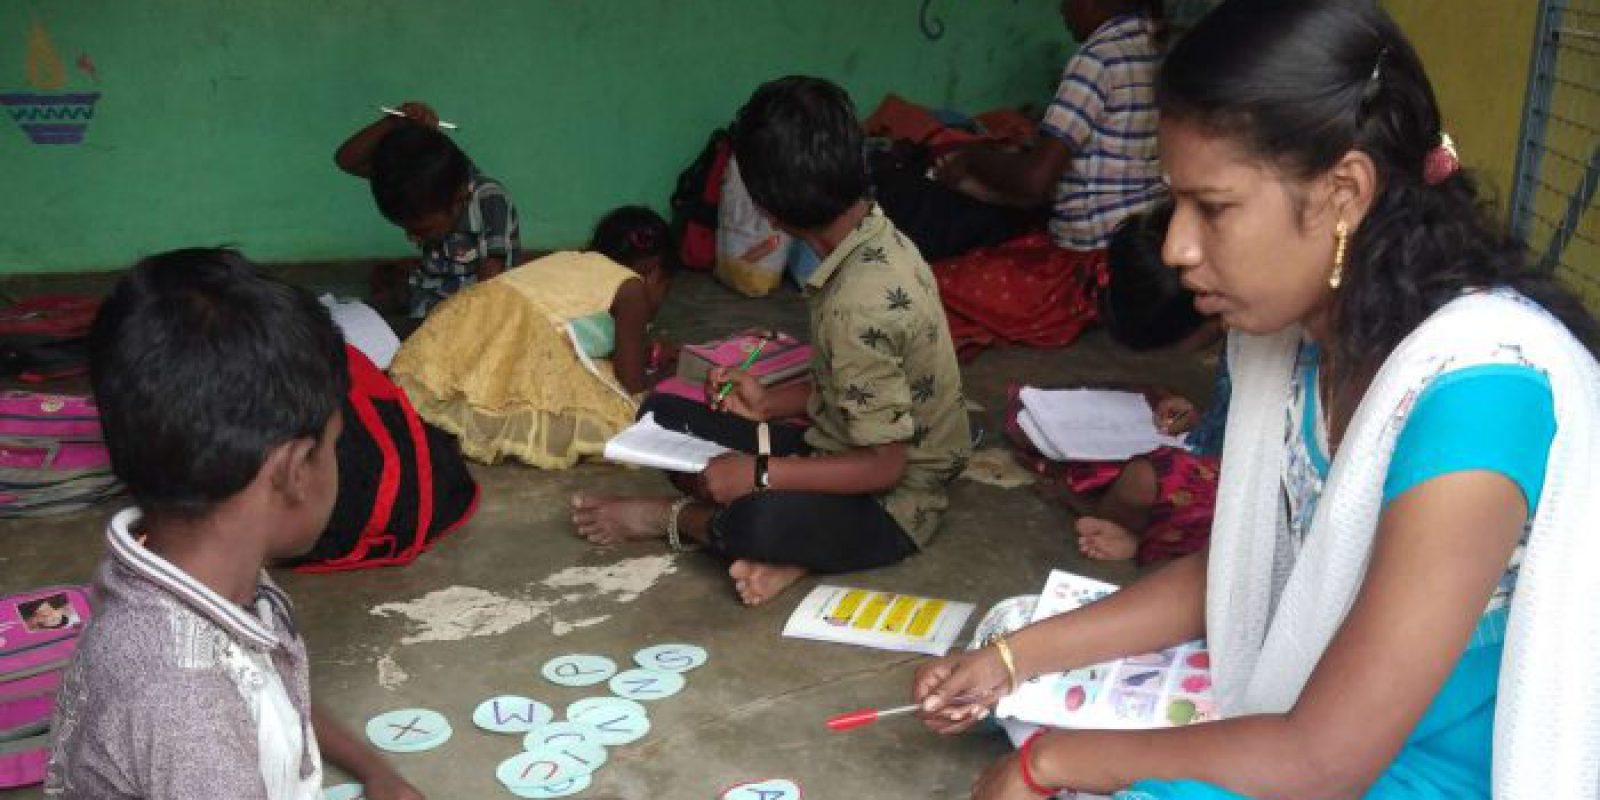 In Tamil Nadu, JRS developed various learning-based activities to support the literacy and numeracy skills of younger children, who were still able to attend school despite the pandemic restrictions. (Jesuit Refugee Service)